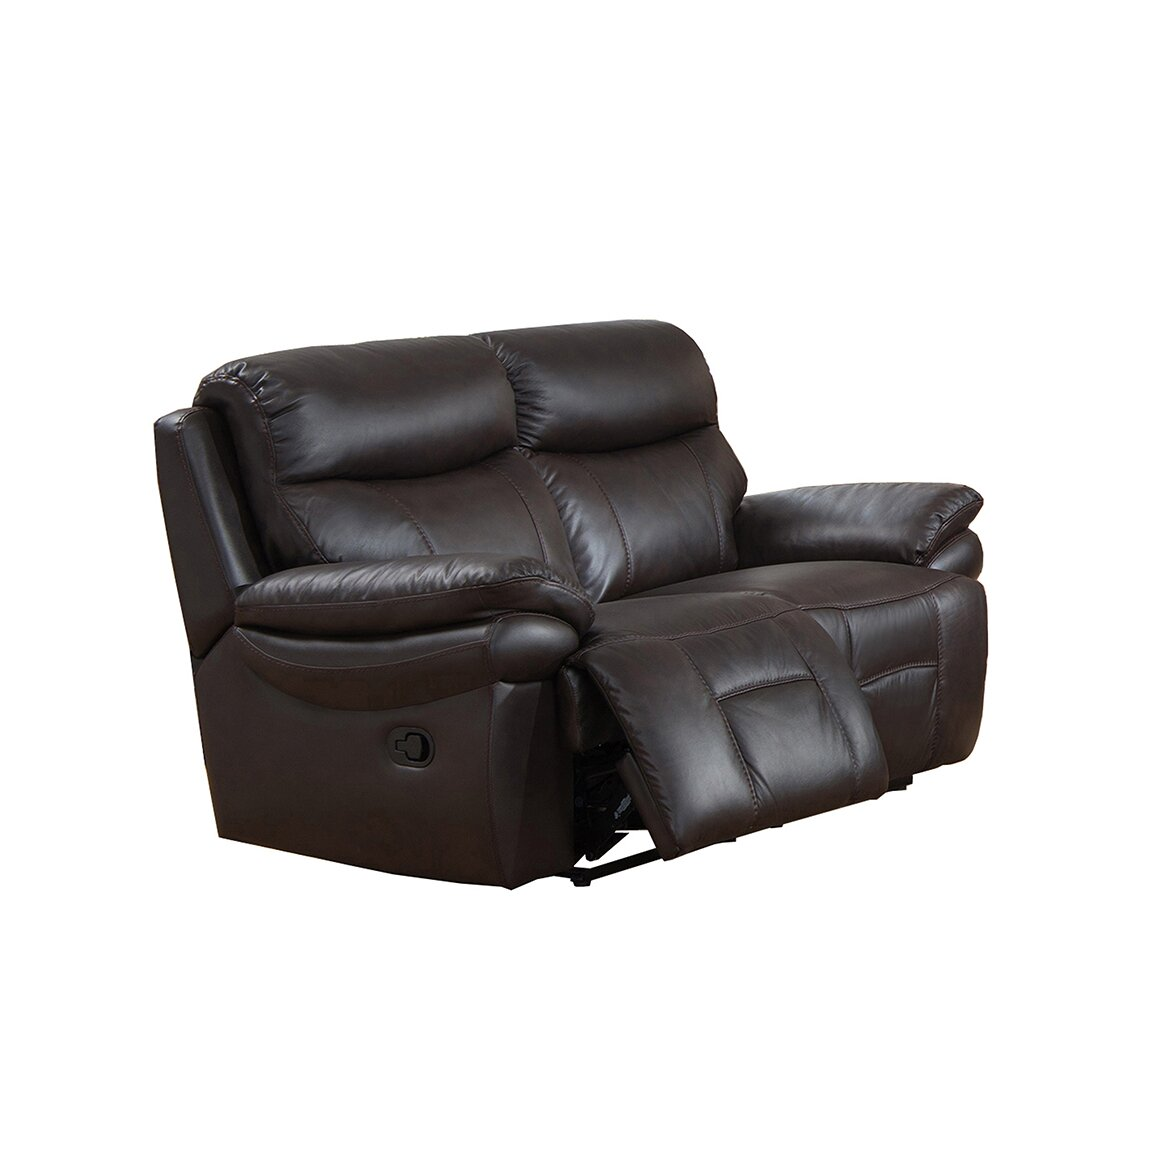 Rushmore leather recliner sofa and loveseat set wayfair for Leather sofa and loveseat set